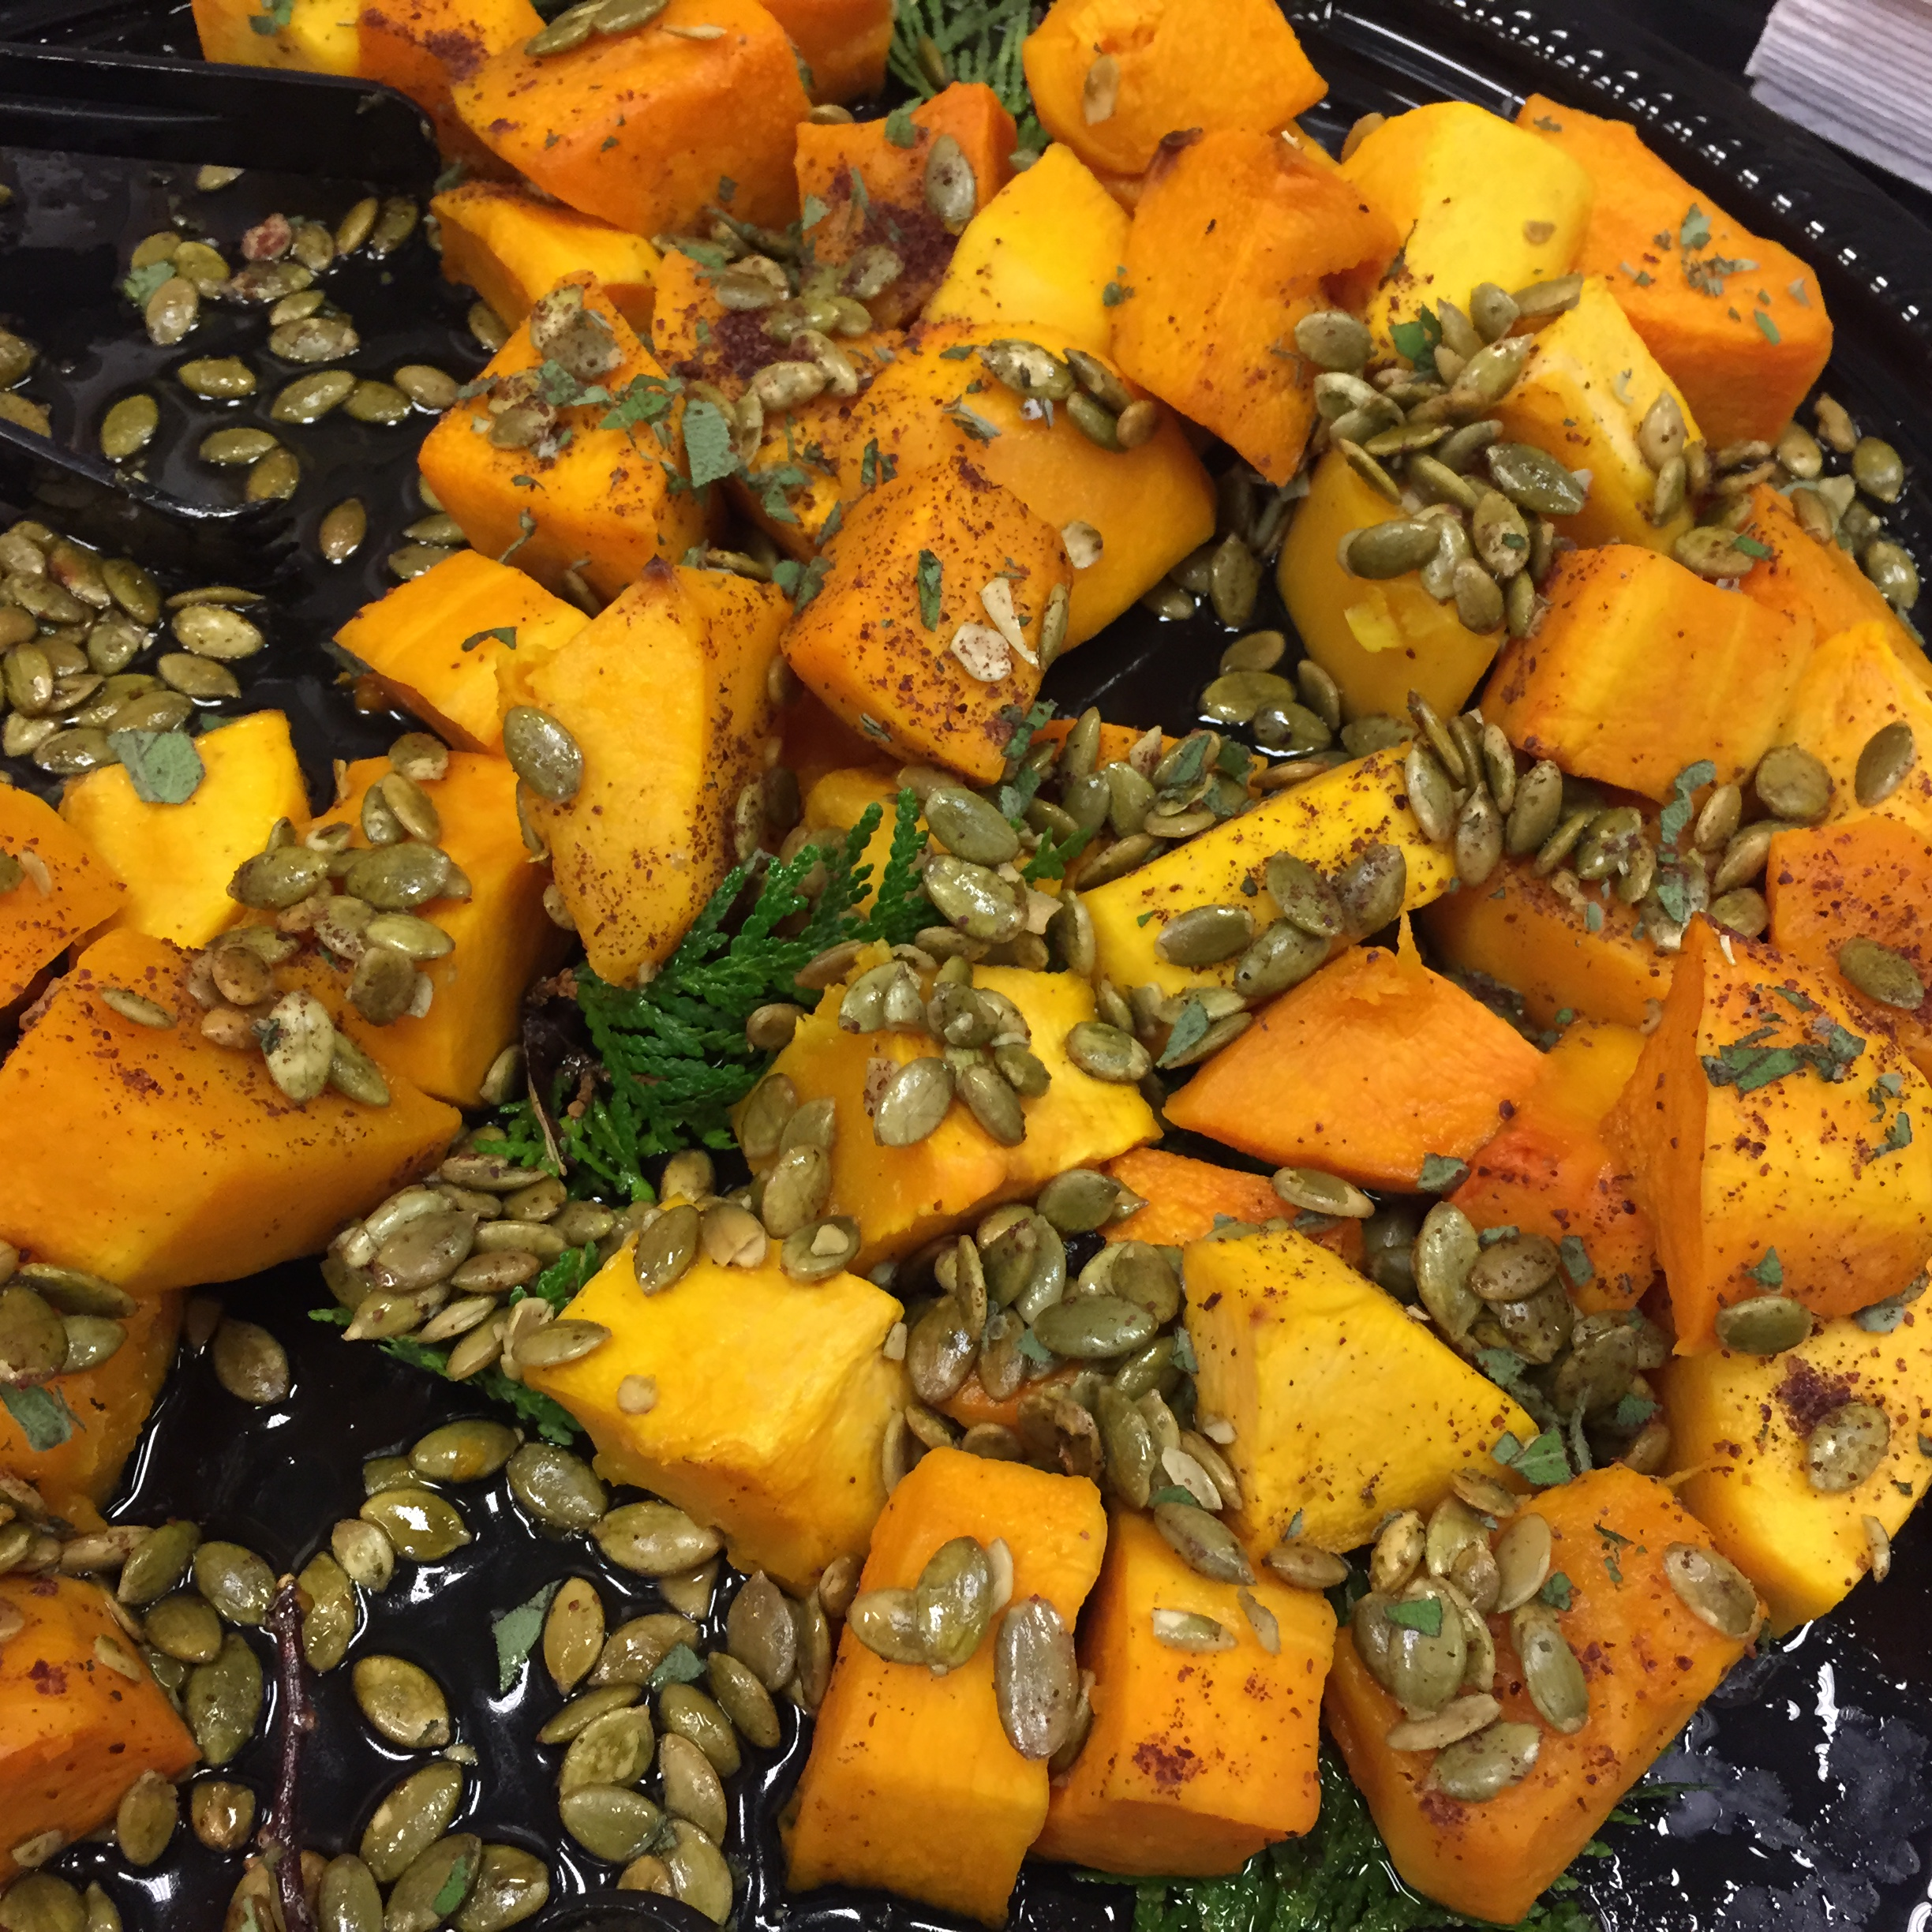 Squash, pumpkin seeds in organic maple syrup made by Sean Sherman, Sioux Chef.